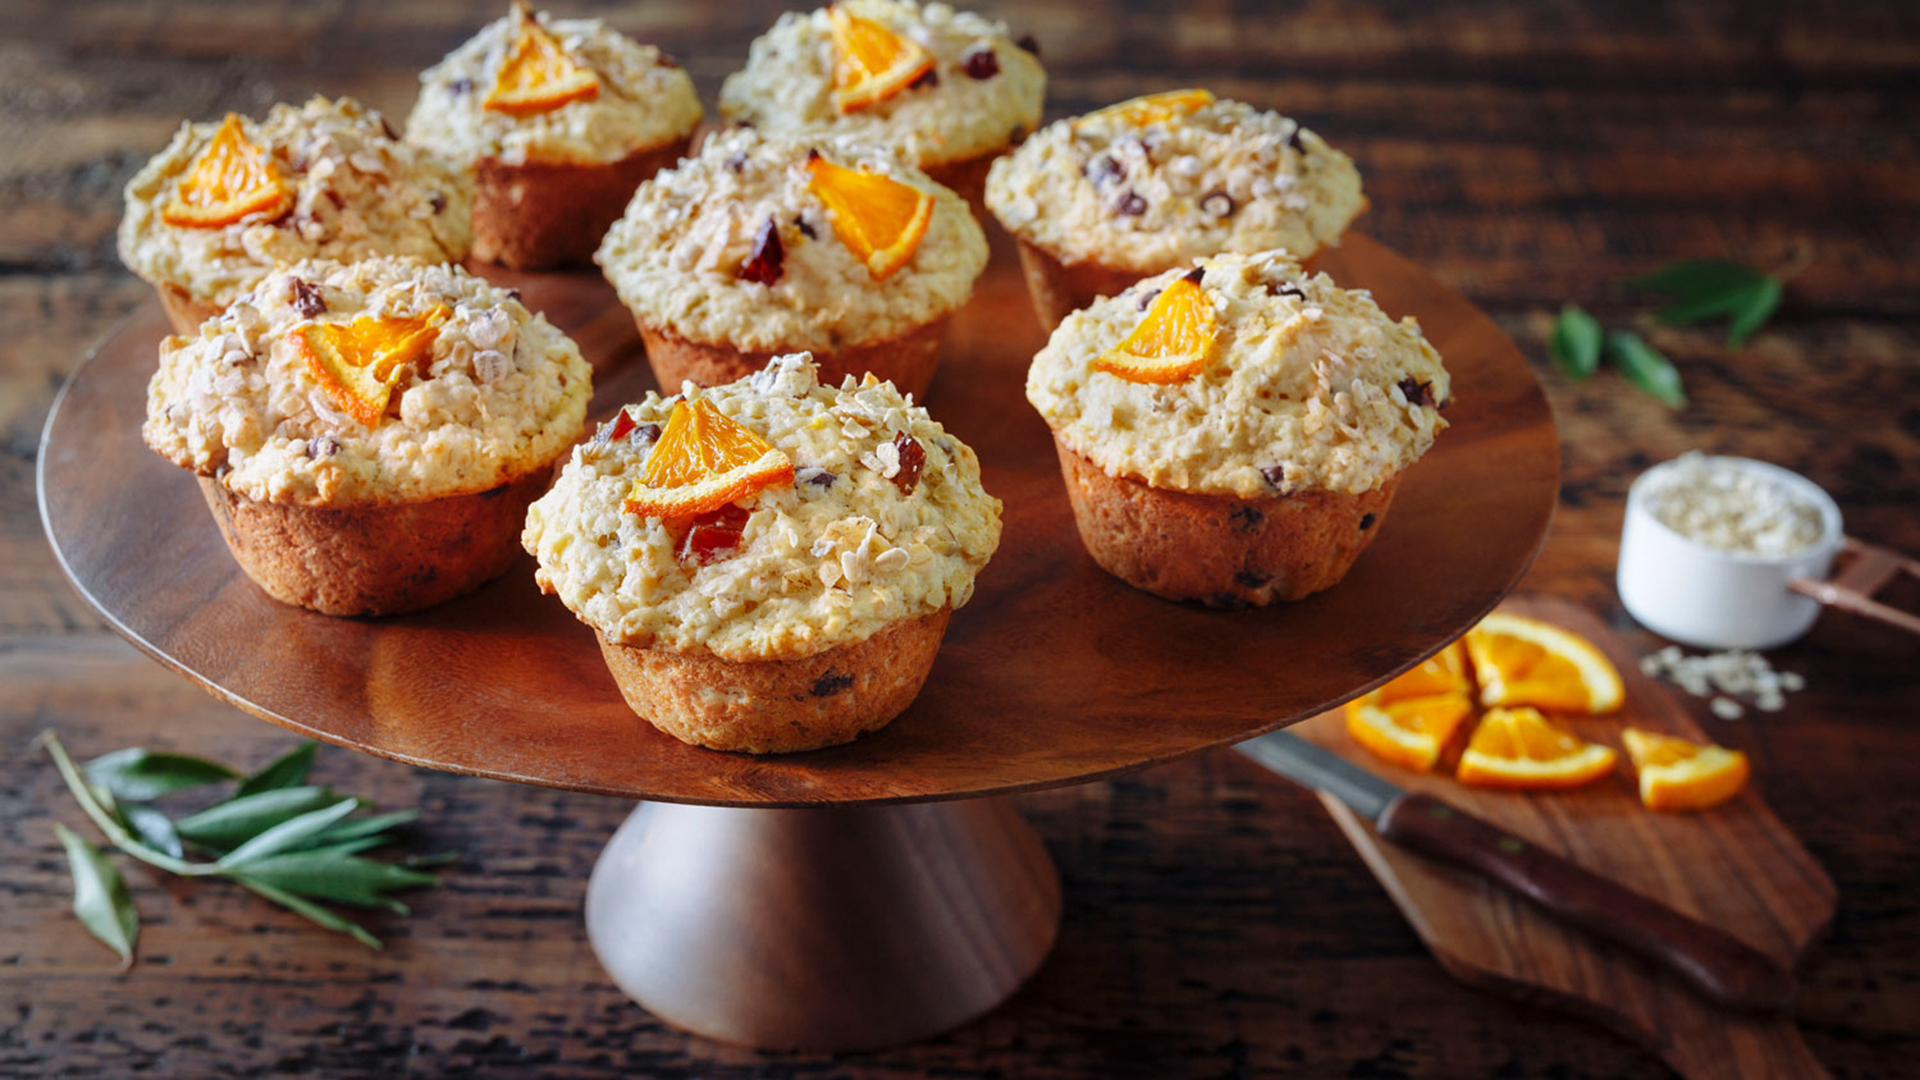 Eight oatmeal and orange muffins on a wooden serving tray